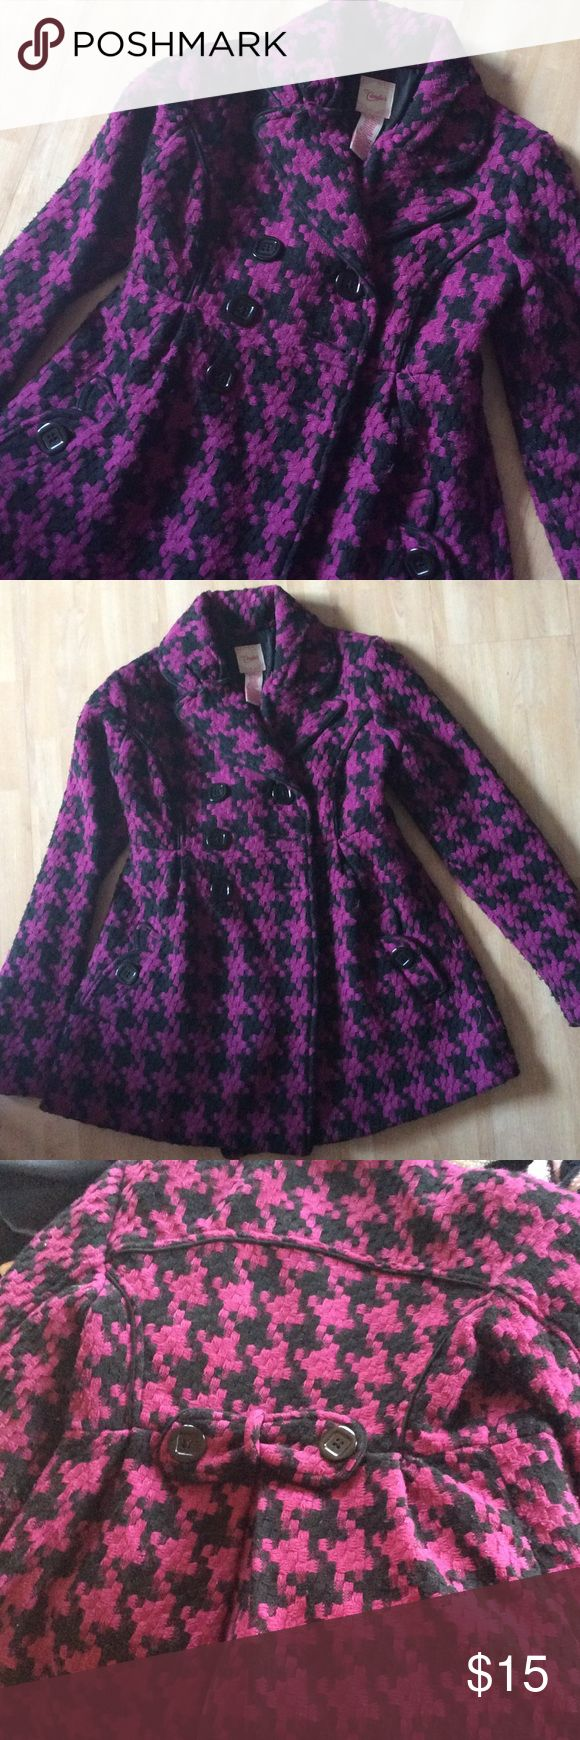 Candie's Pea Coat Look cute in the fall/winter with this purple and black pea coat! Candie's Jackets & Coats Pea Coats